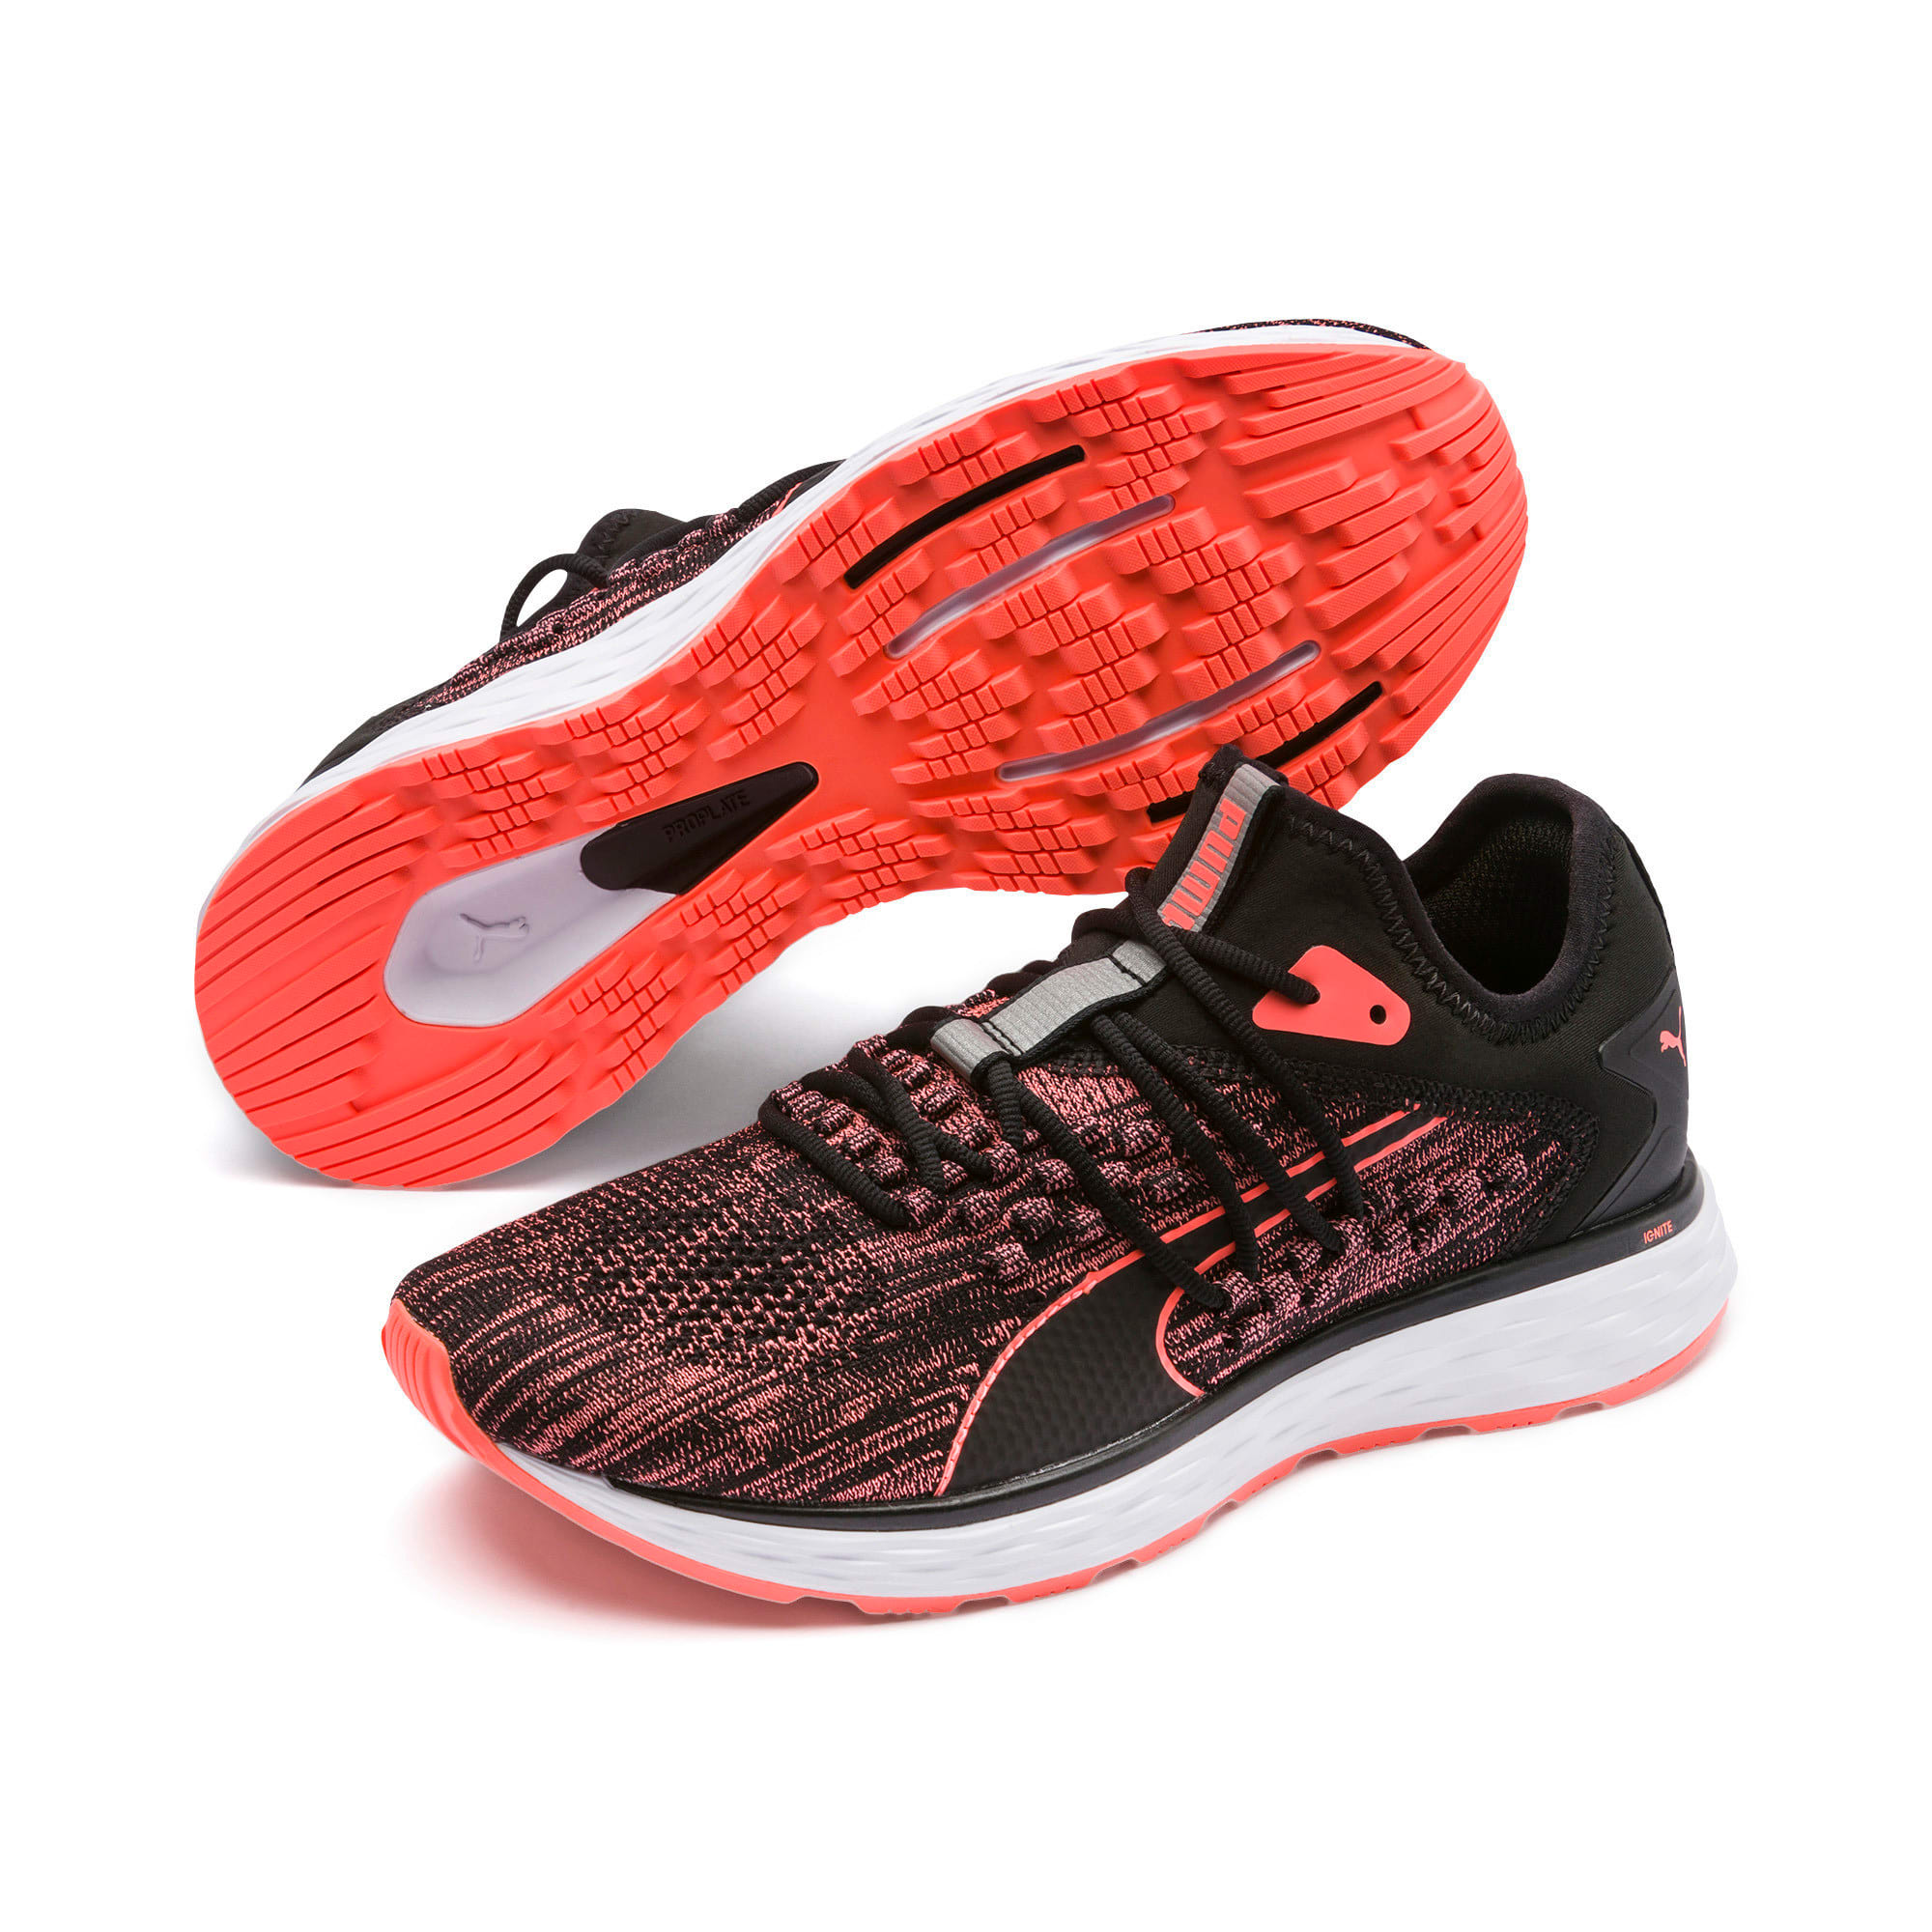 Thumbnail 3 of SPEED FUSEFIT Women's Running Shoes, Puma Black-Fluo Peach, medium-IND